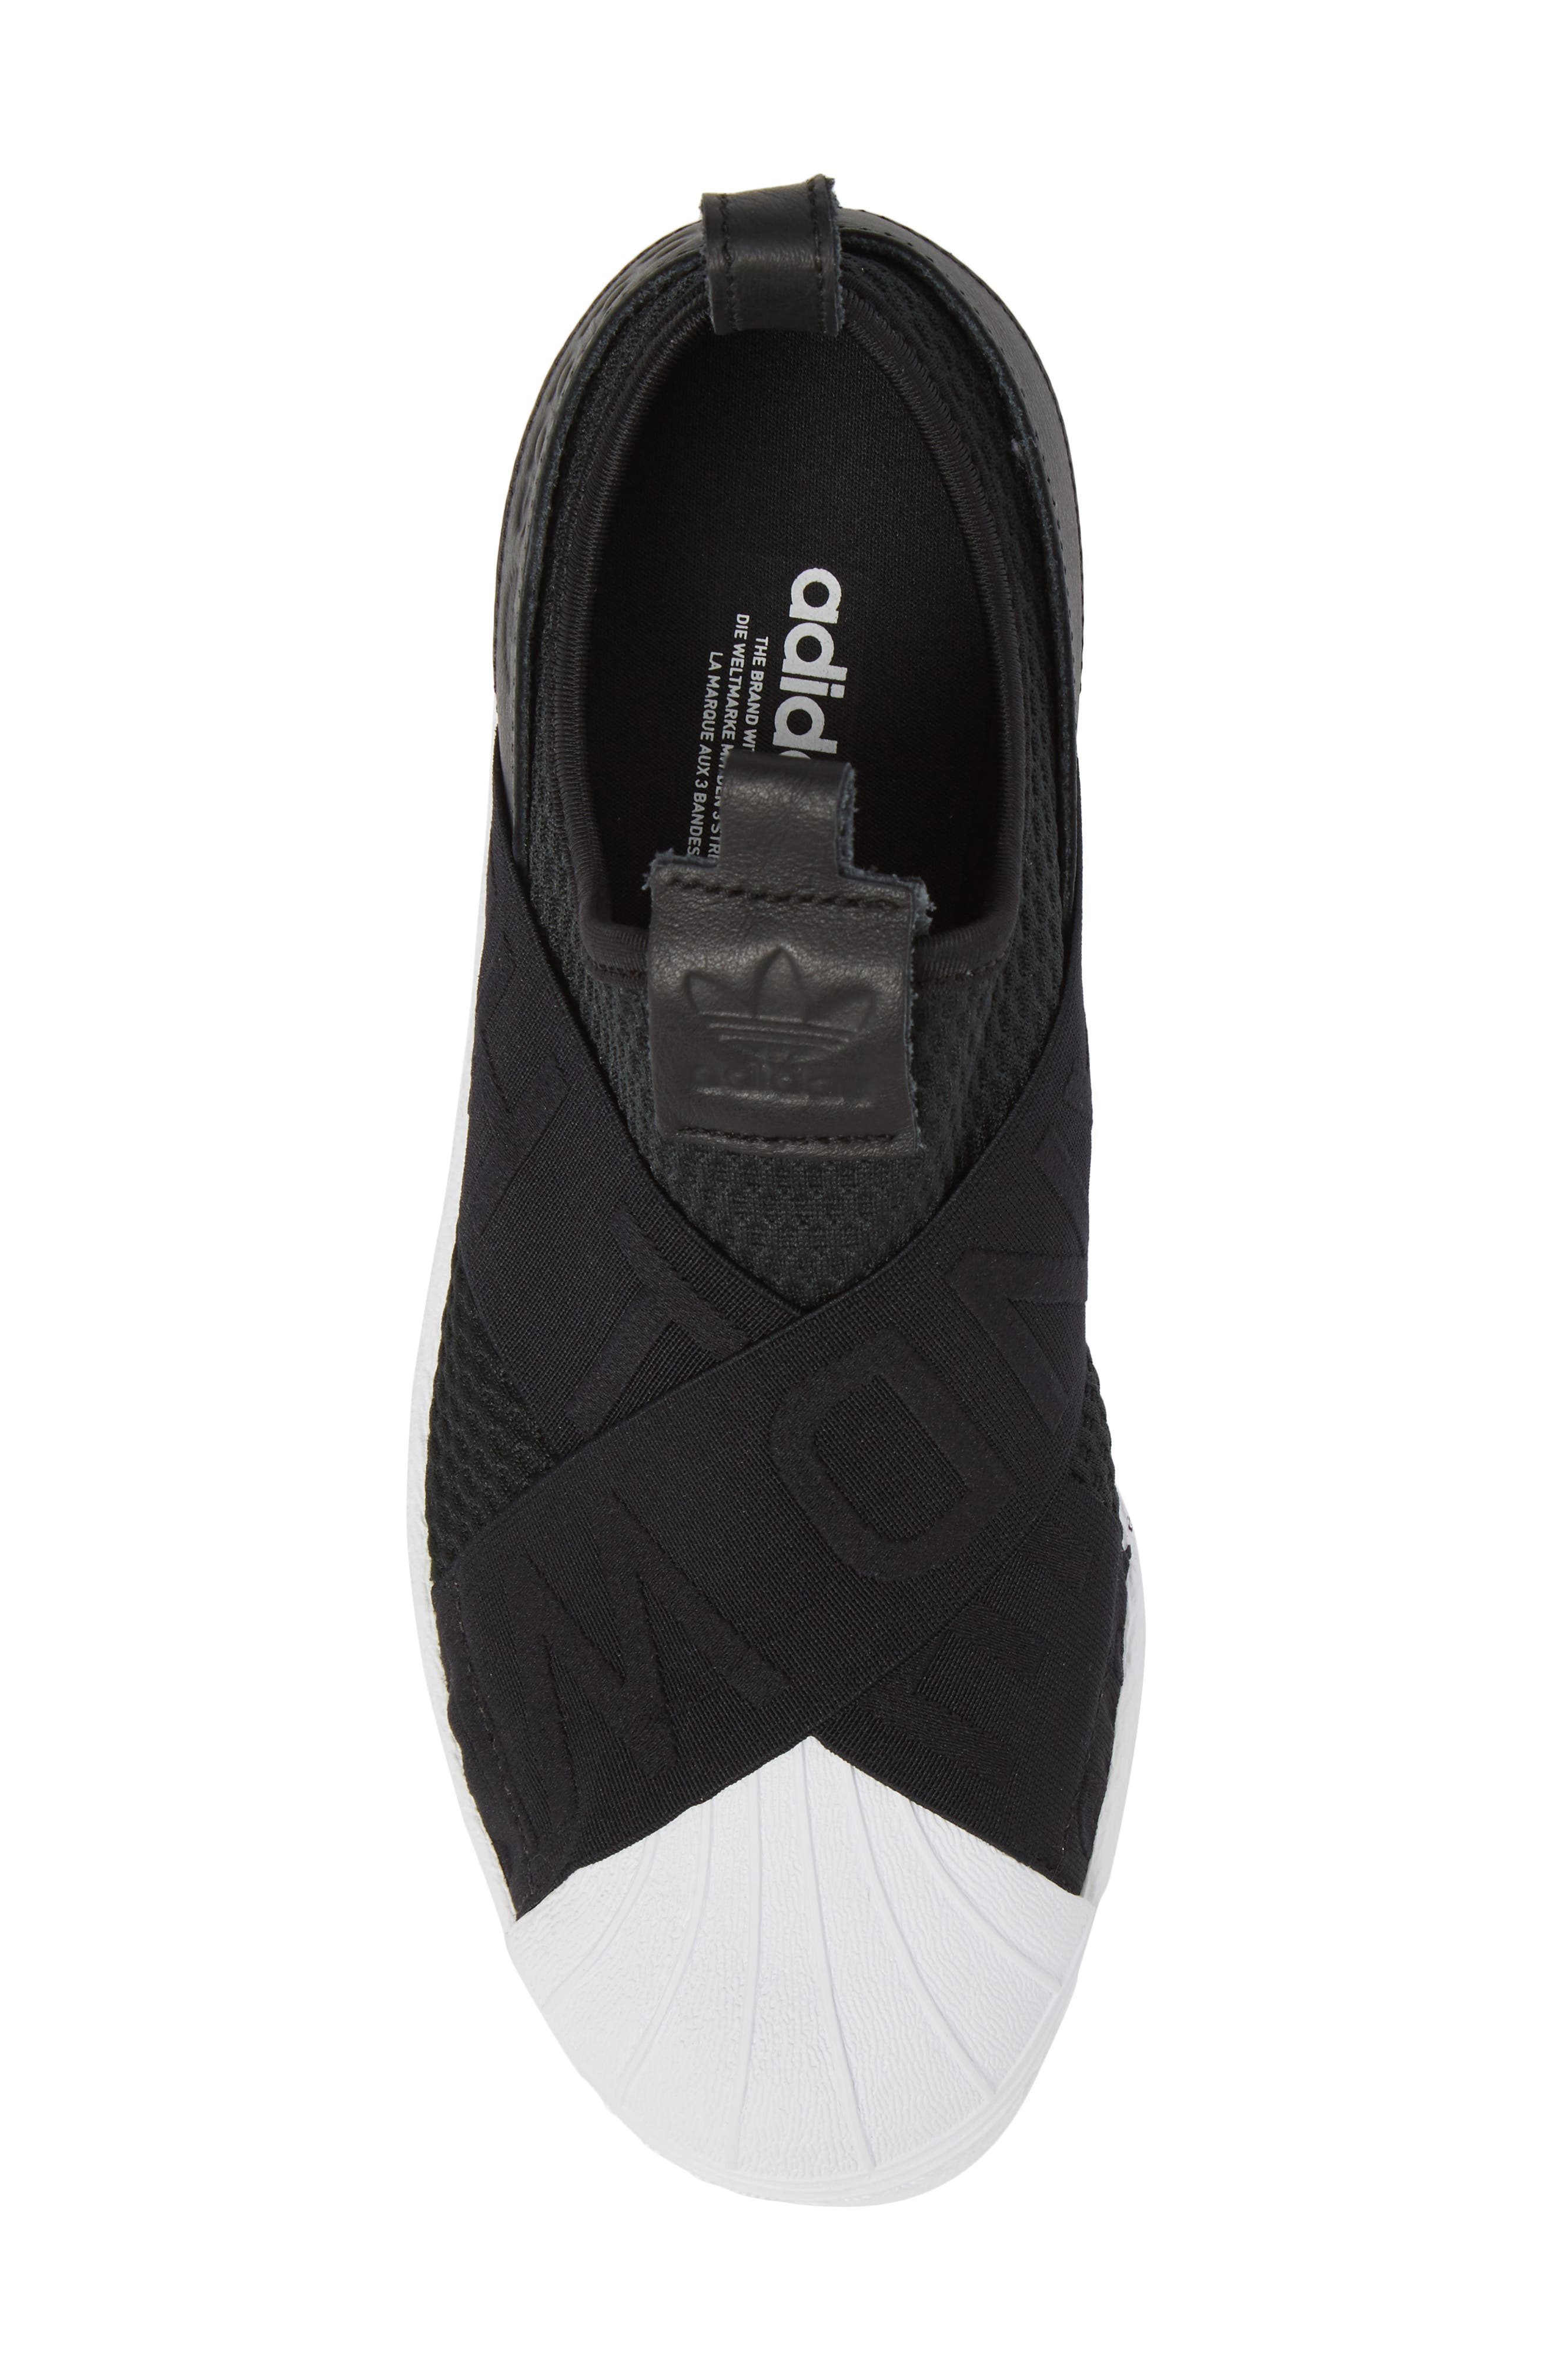 Superstar Slip-On Sneaker,                             Alternate thumbnail 5, color,                             003